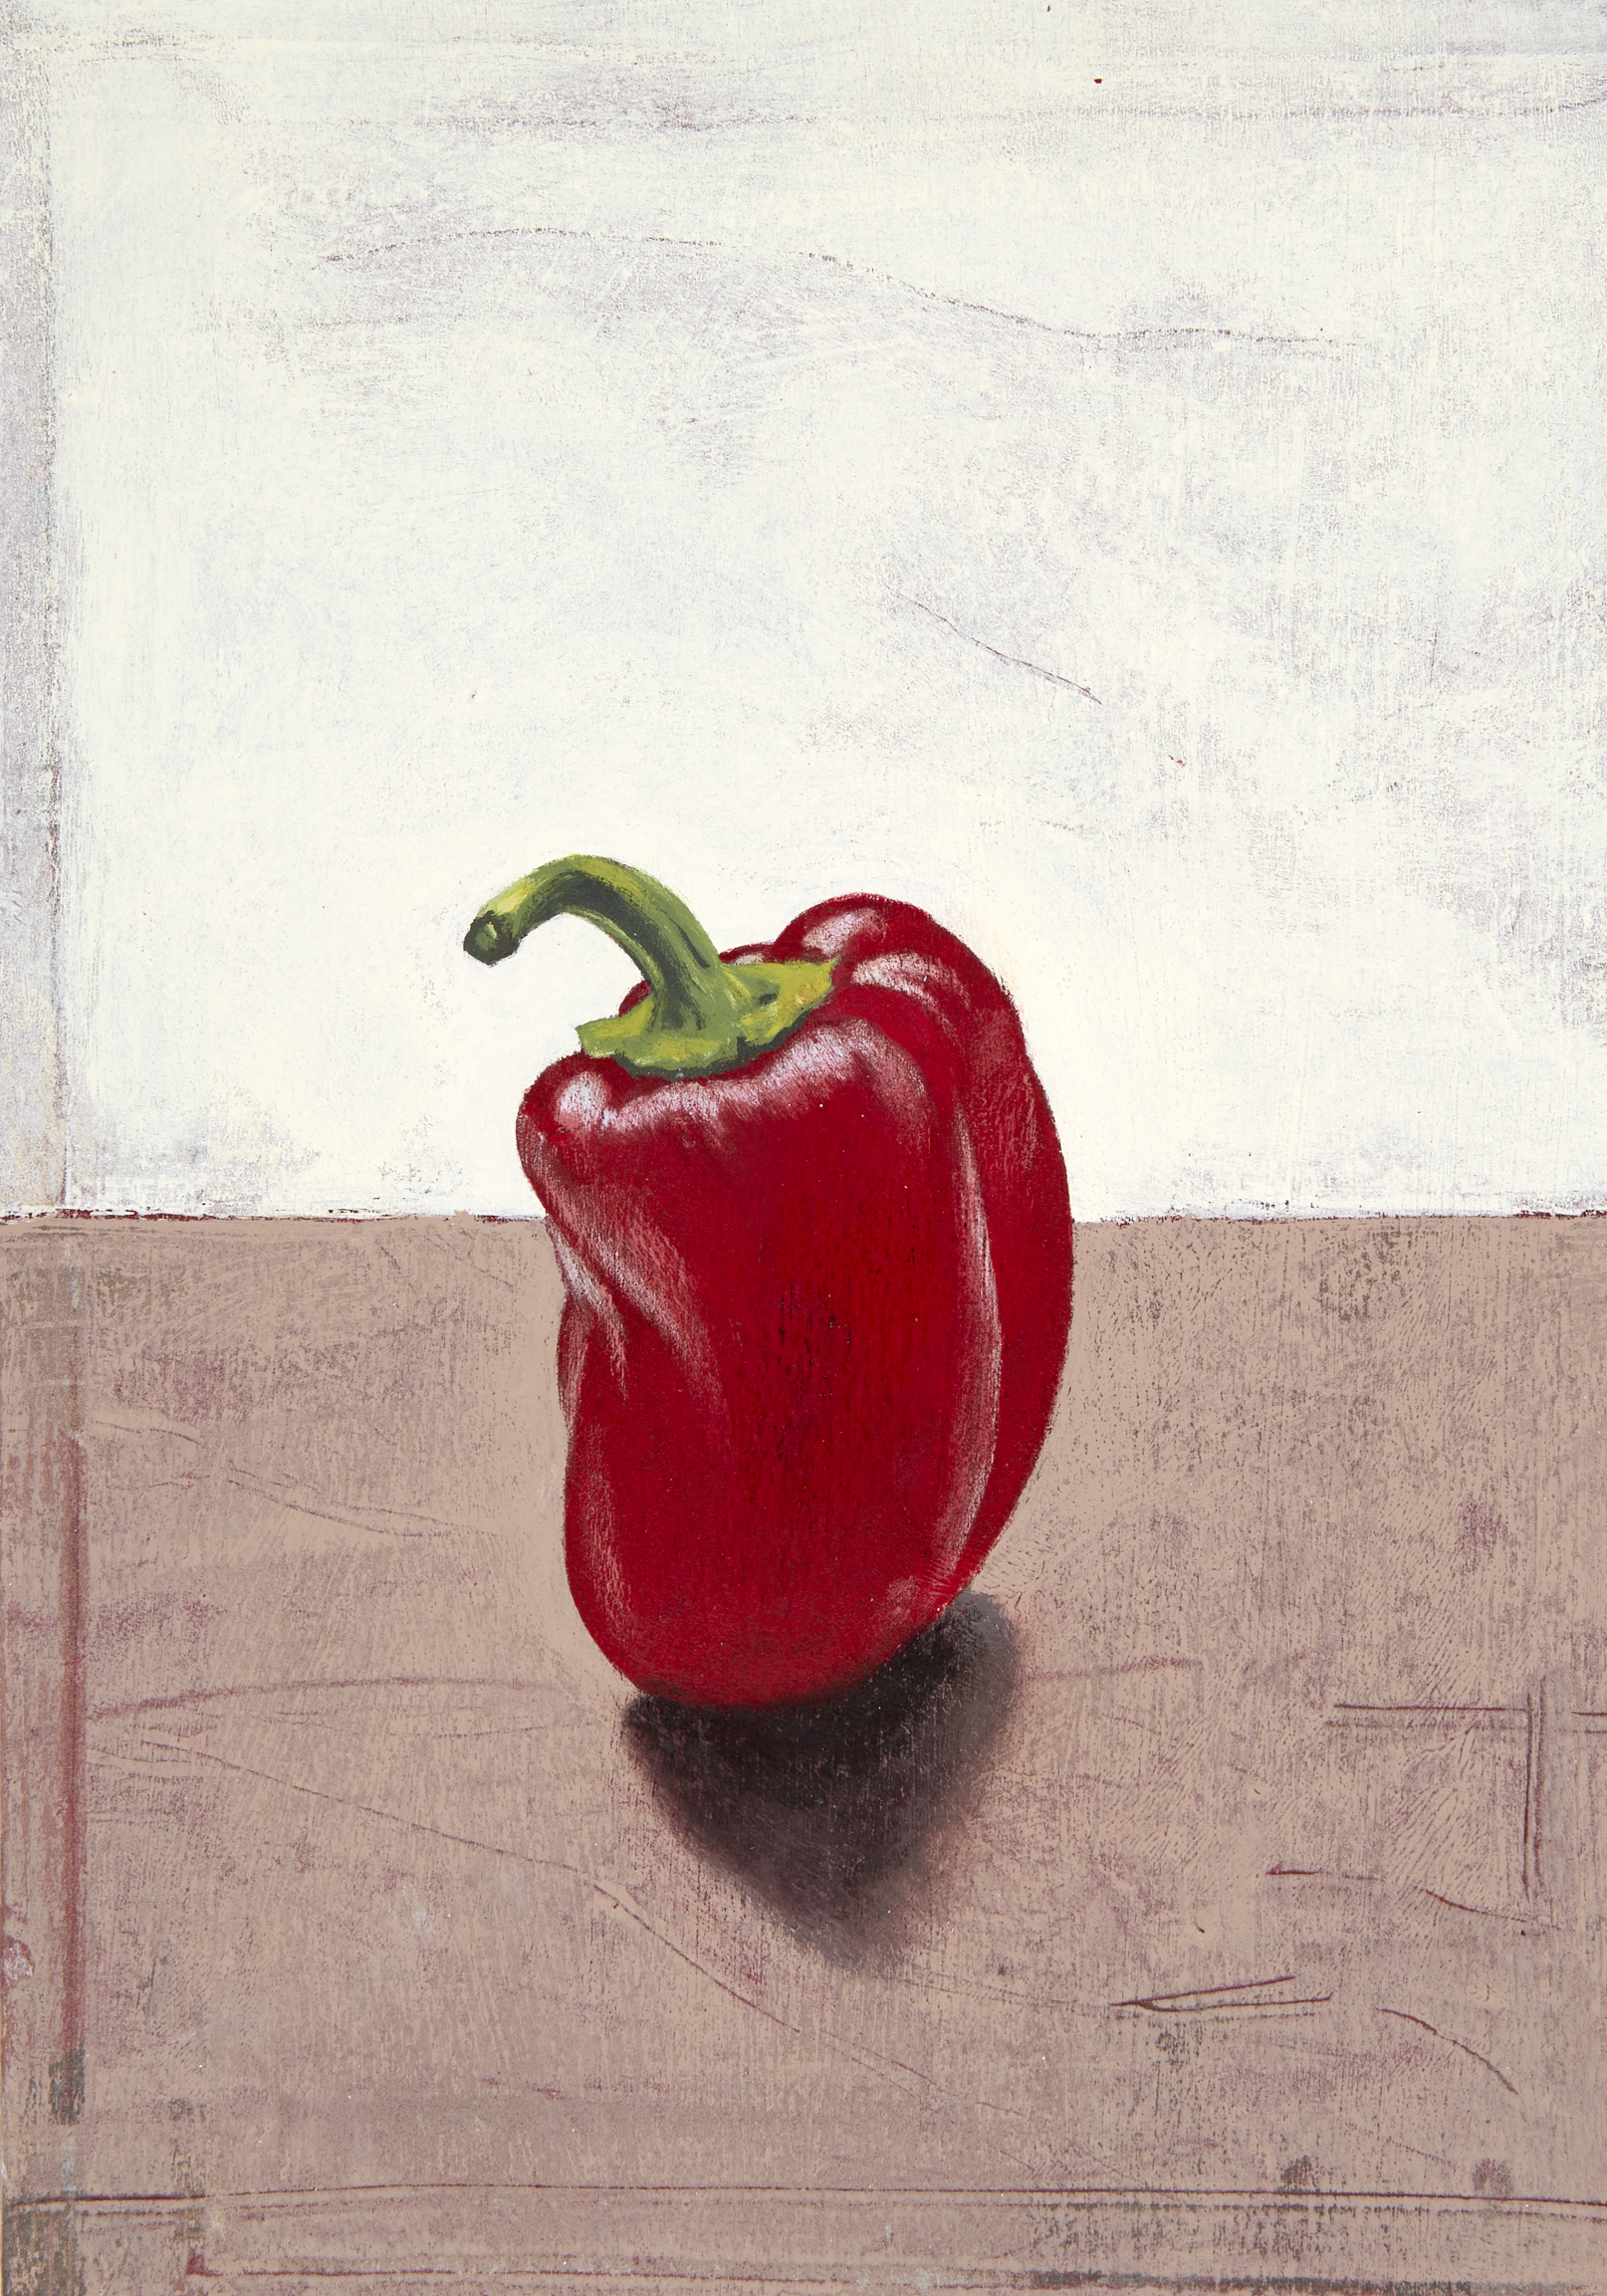 David Lyon Art - Red Pepper - 150dpi.jpg